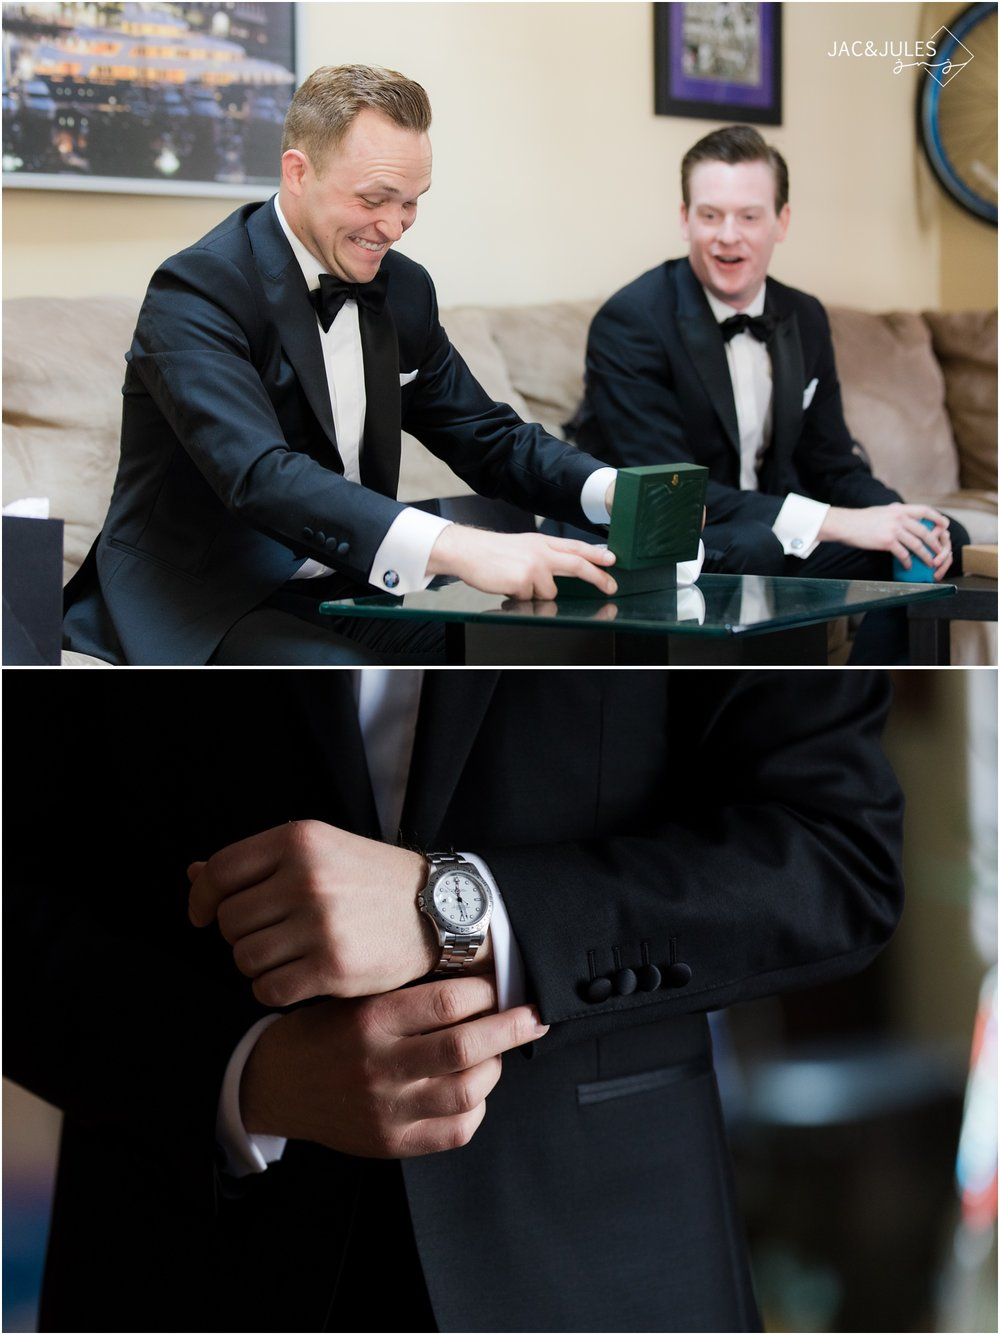 Groom is shocked by gift of watch from bride.